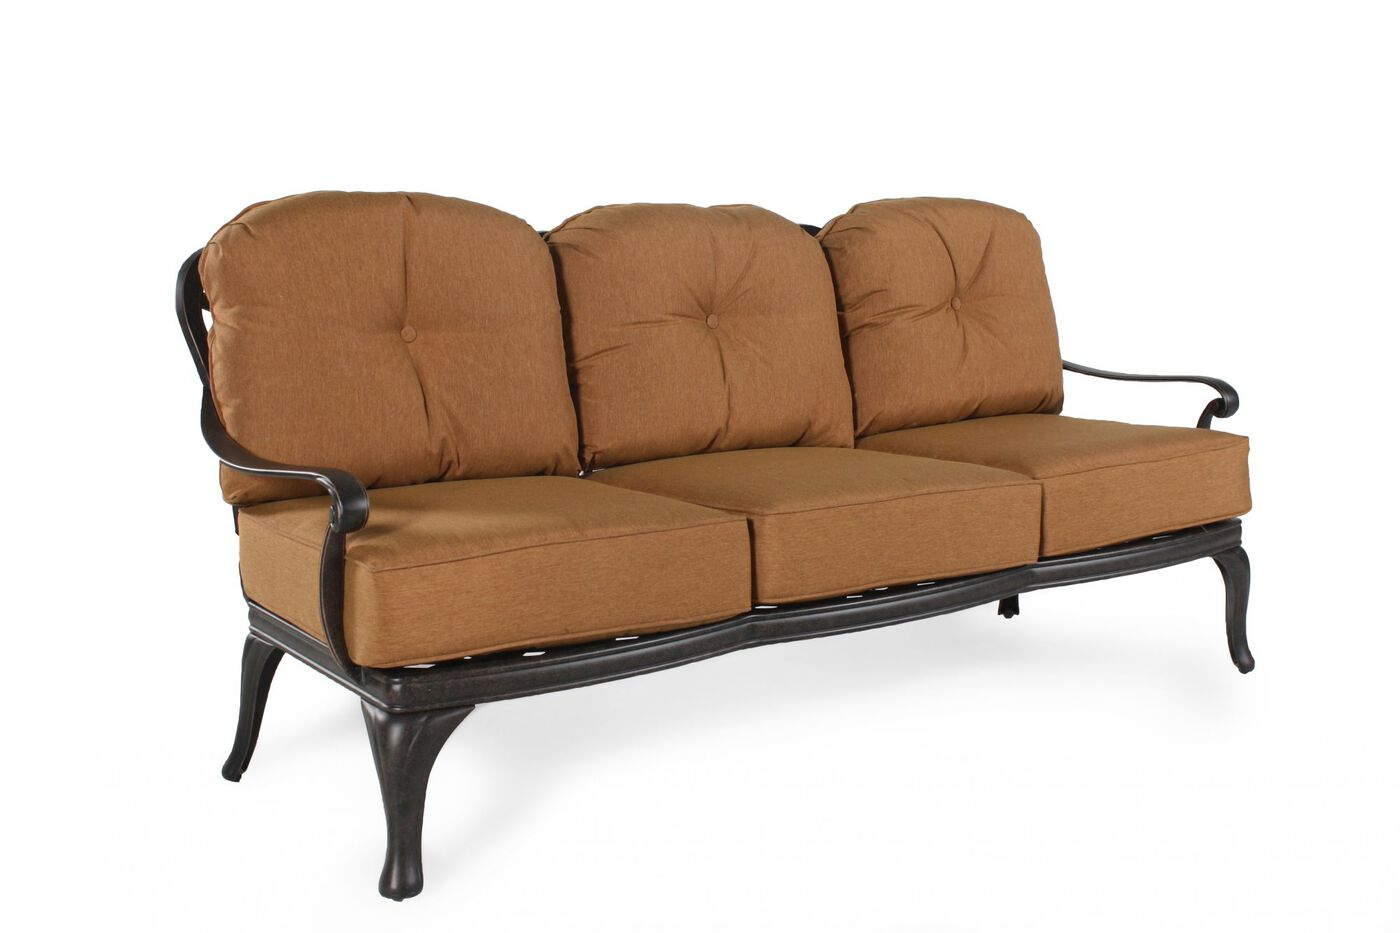 Mathis Brothers Patio Furniture world source sonoma sofa | mathis brothers furniture